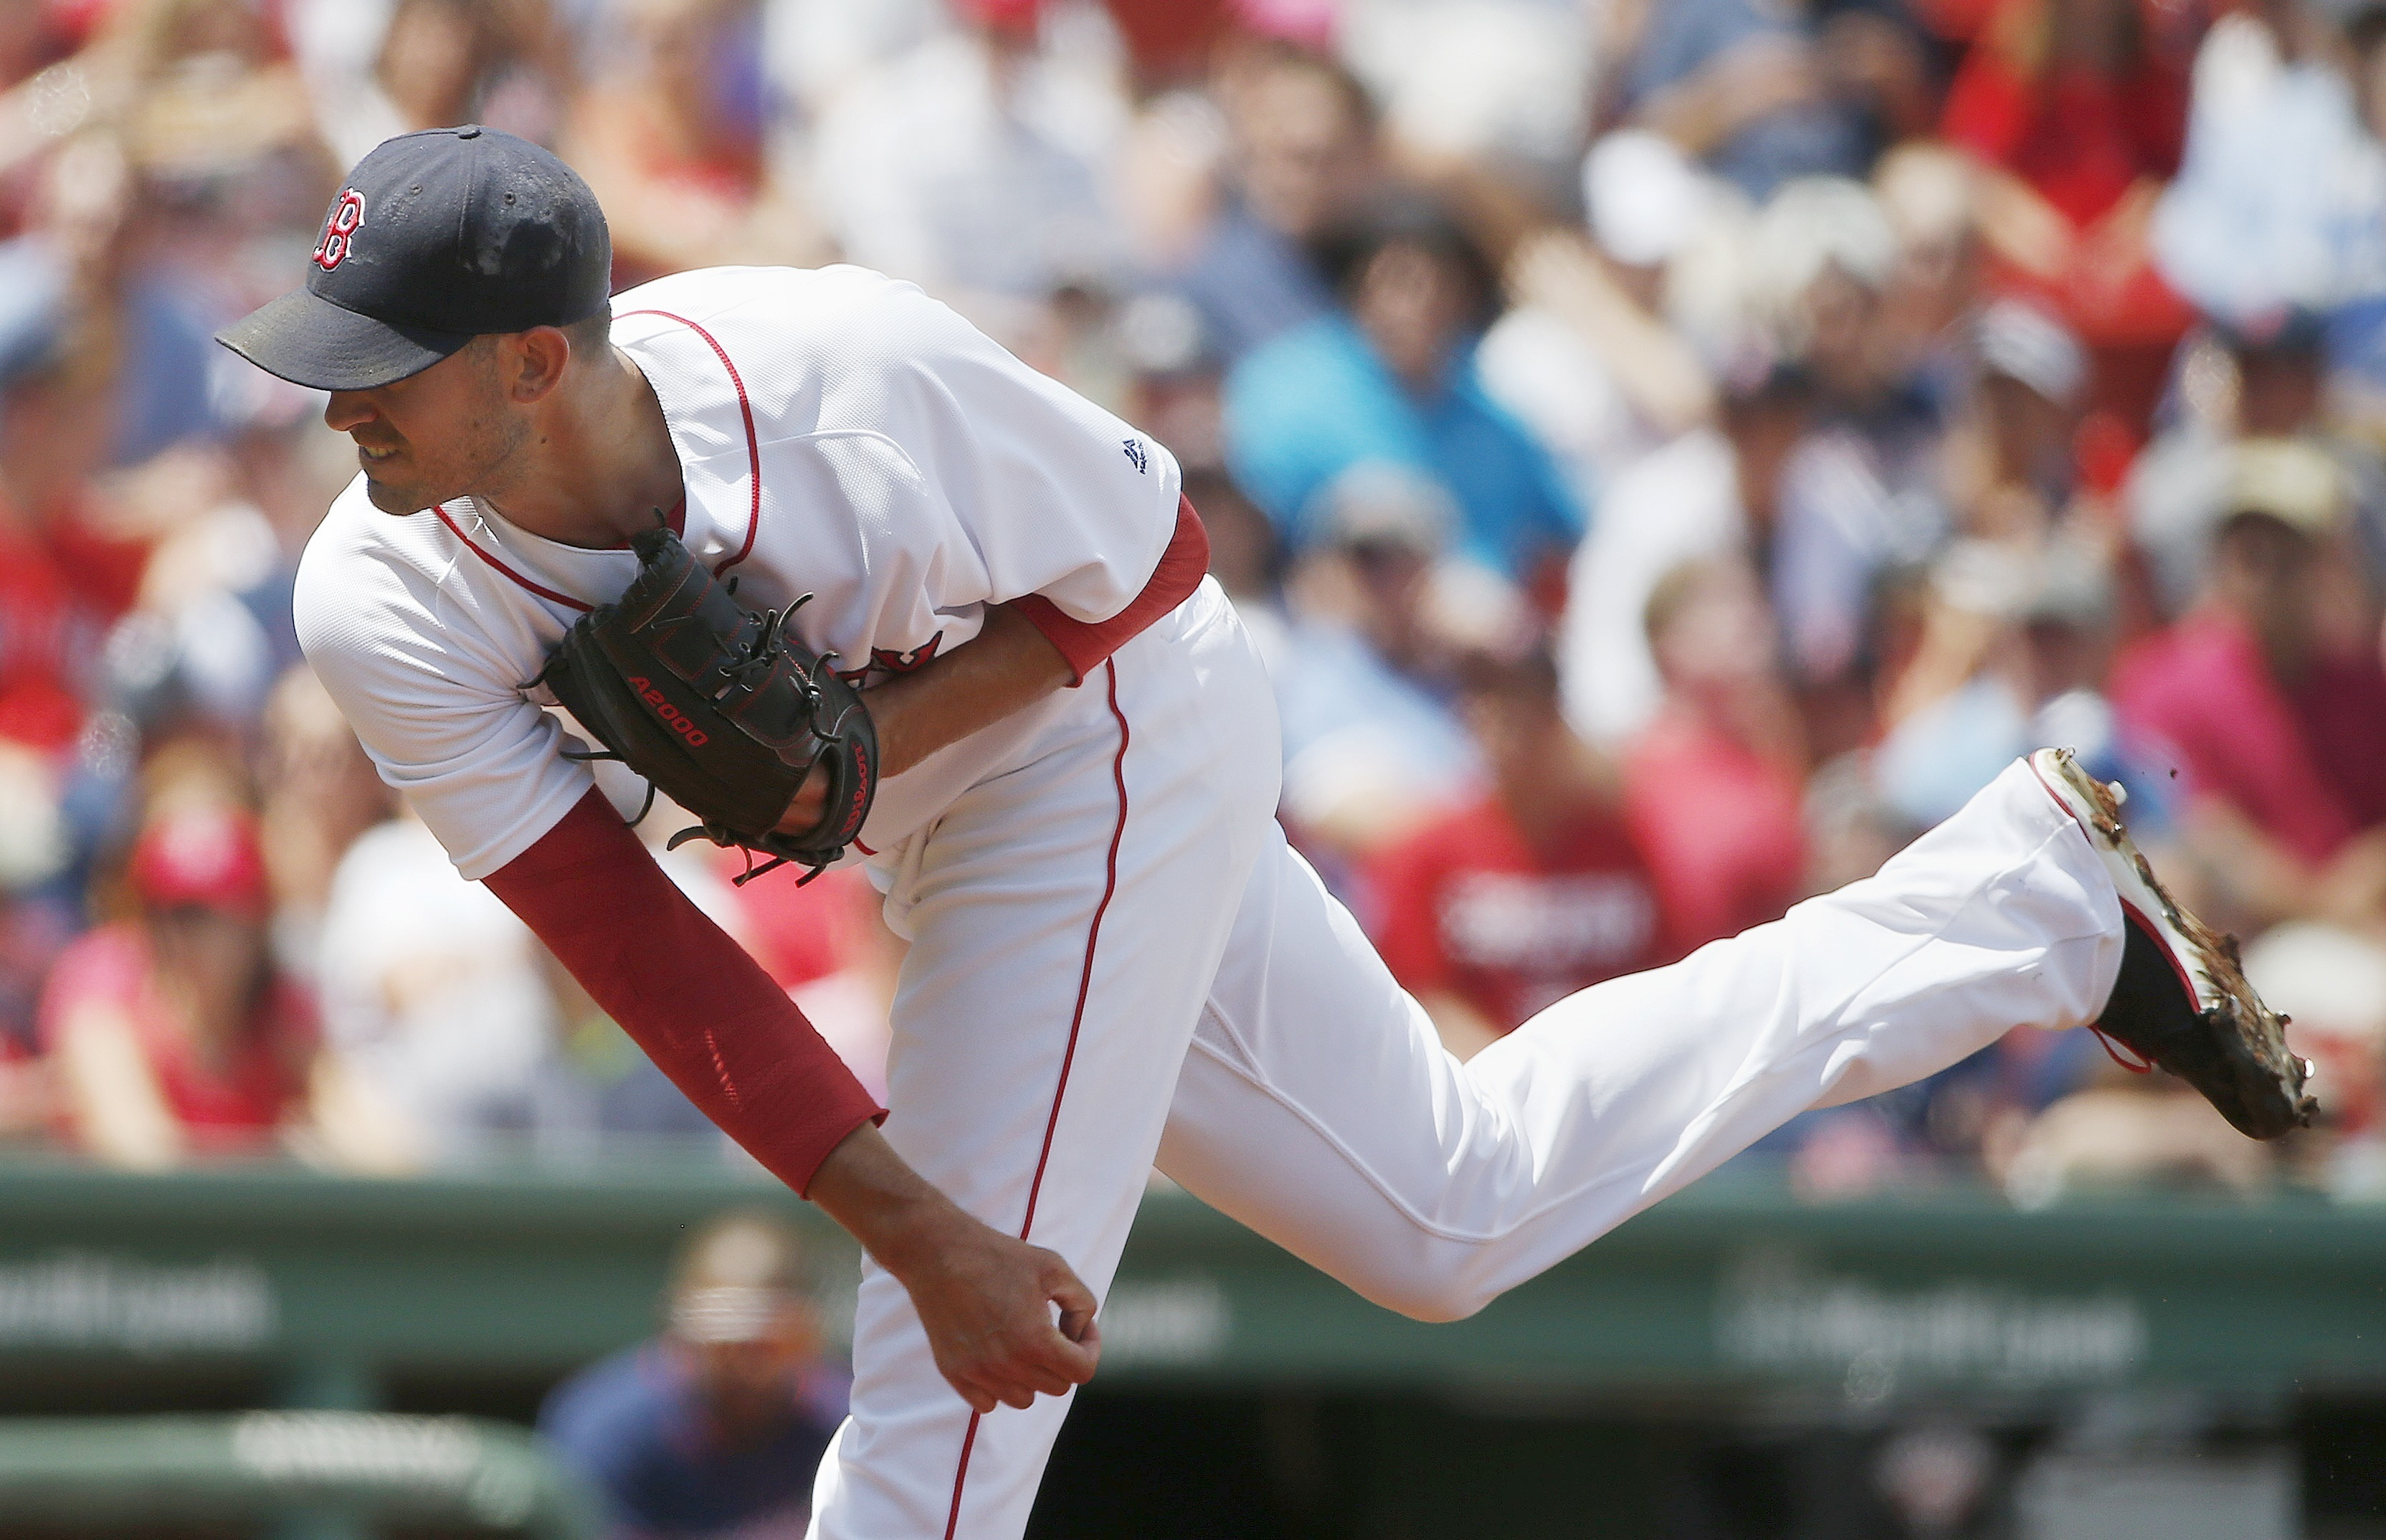 Boston Red Sox's Rick Porcello pitches during the first inning of a baseball game against the Minnesota Twins in Boston, Sunday, July 24, 2016. (AP Photo/Michael Dwyer)